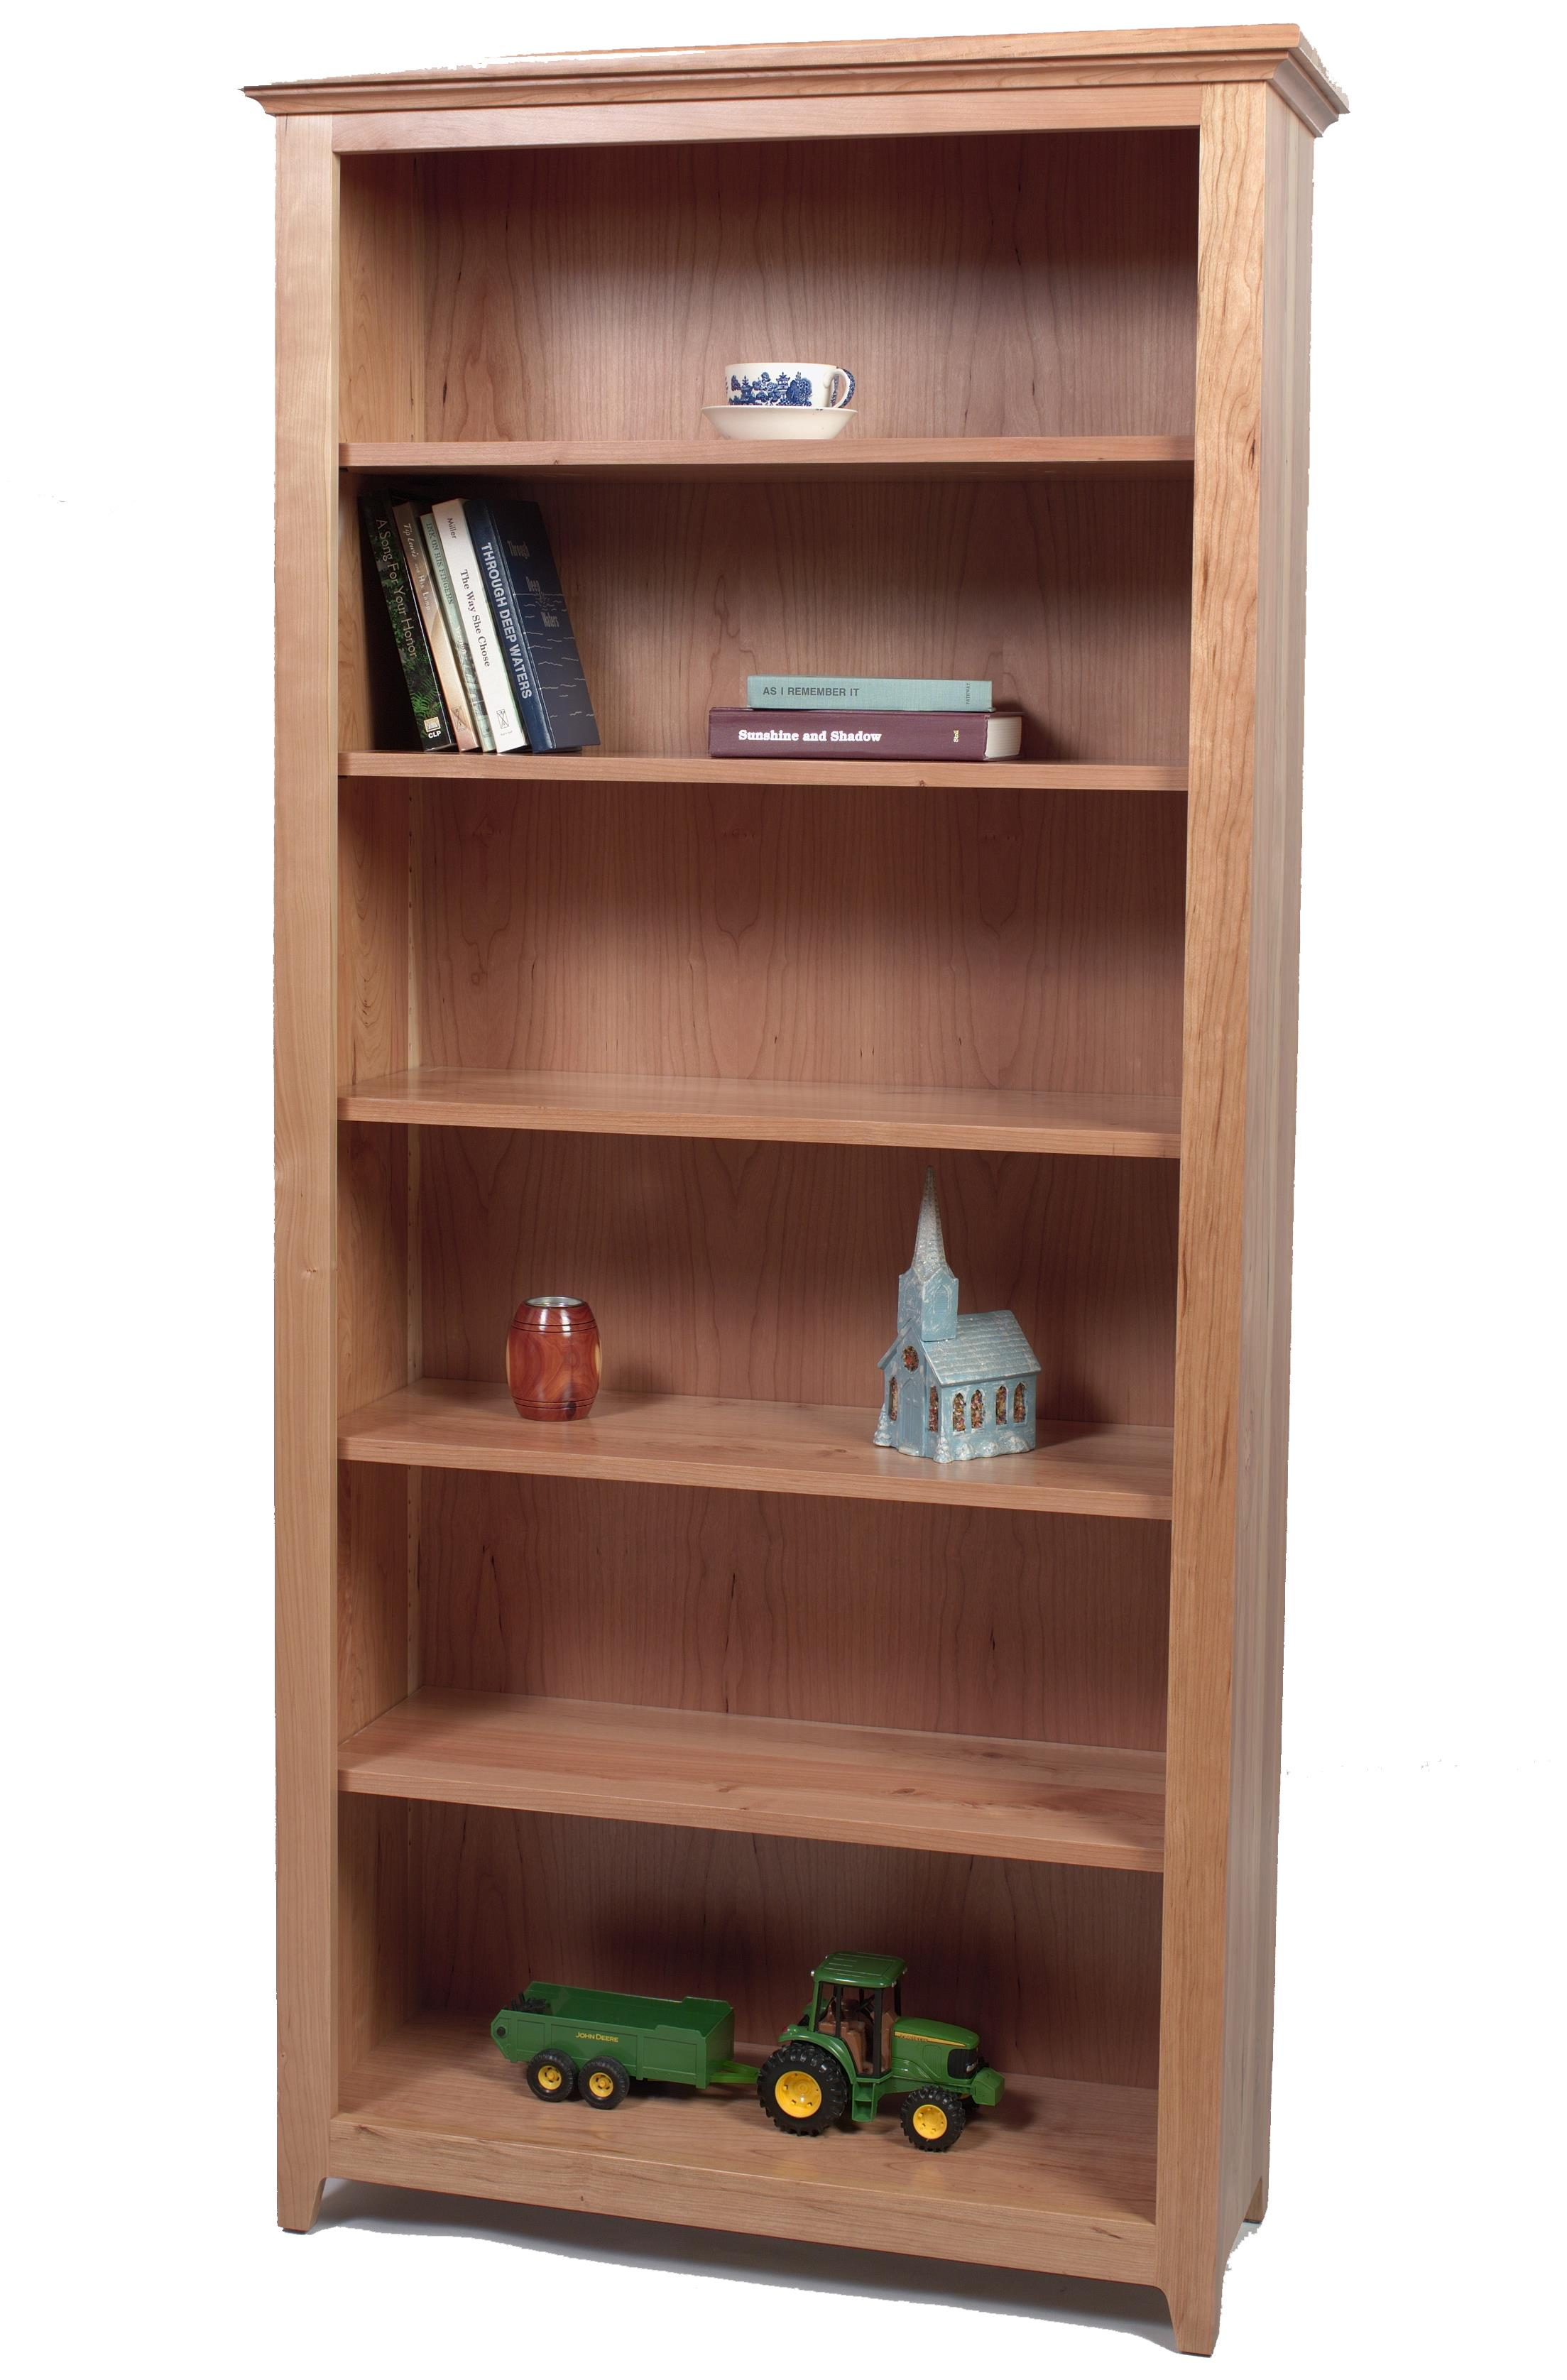 Wonder Wood Bookcases Customizable Doughty Ridge Bookcase by Wonder Wood at Saugerties Furniture Mart